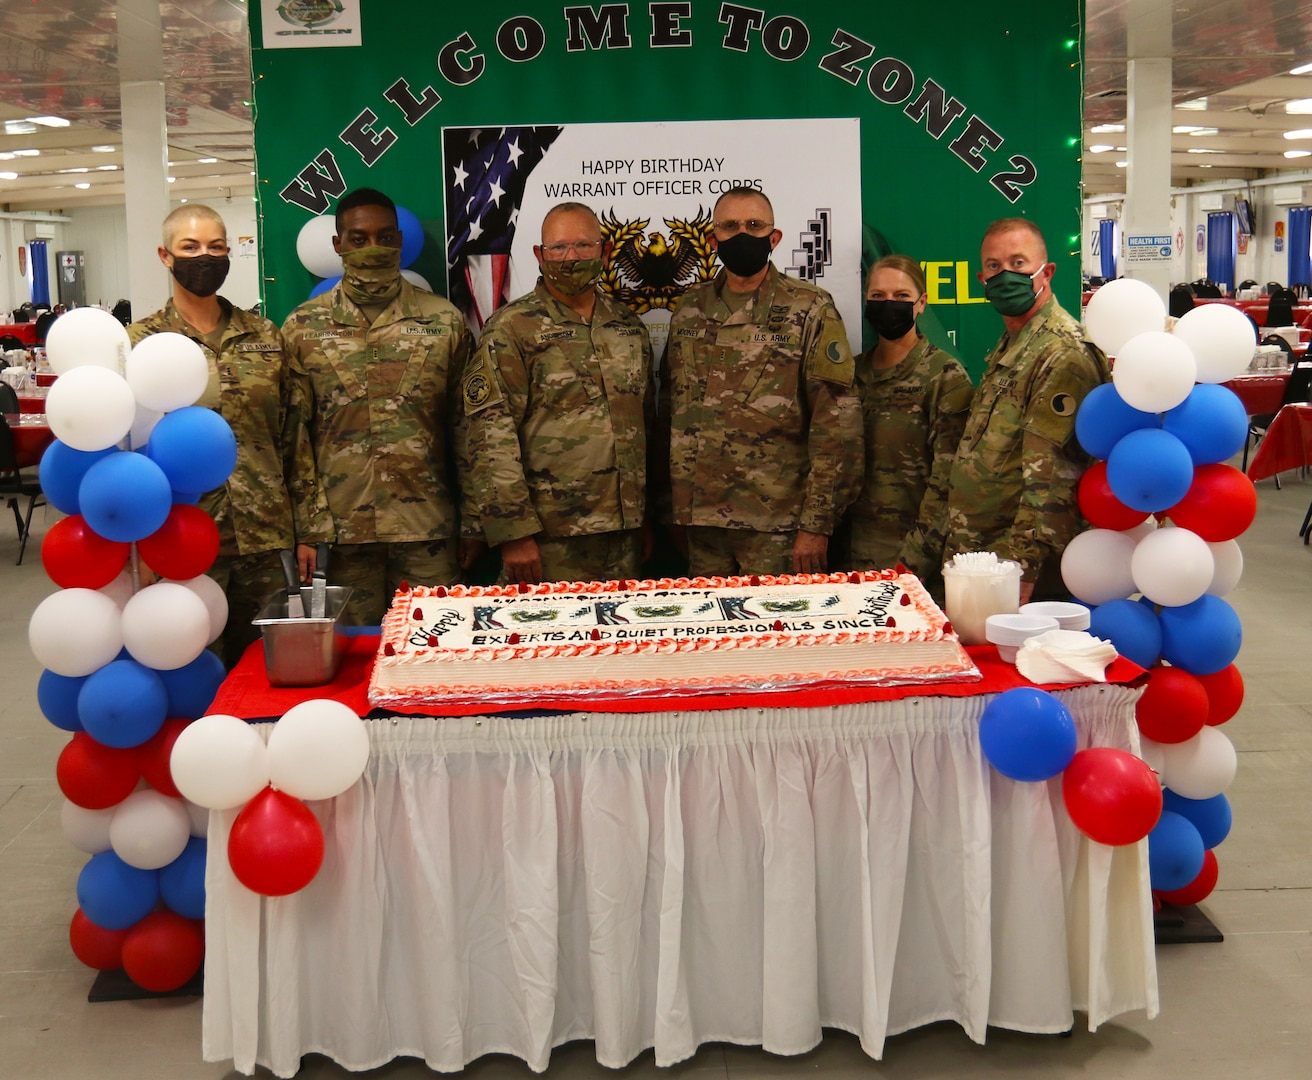 Deployed 29th Infantry Division Warrant Officers Celebrate 103rd birthday